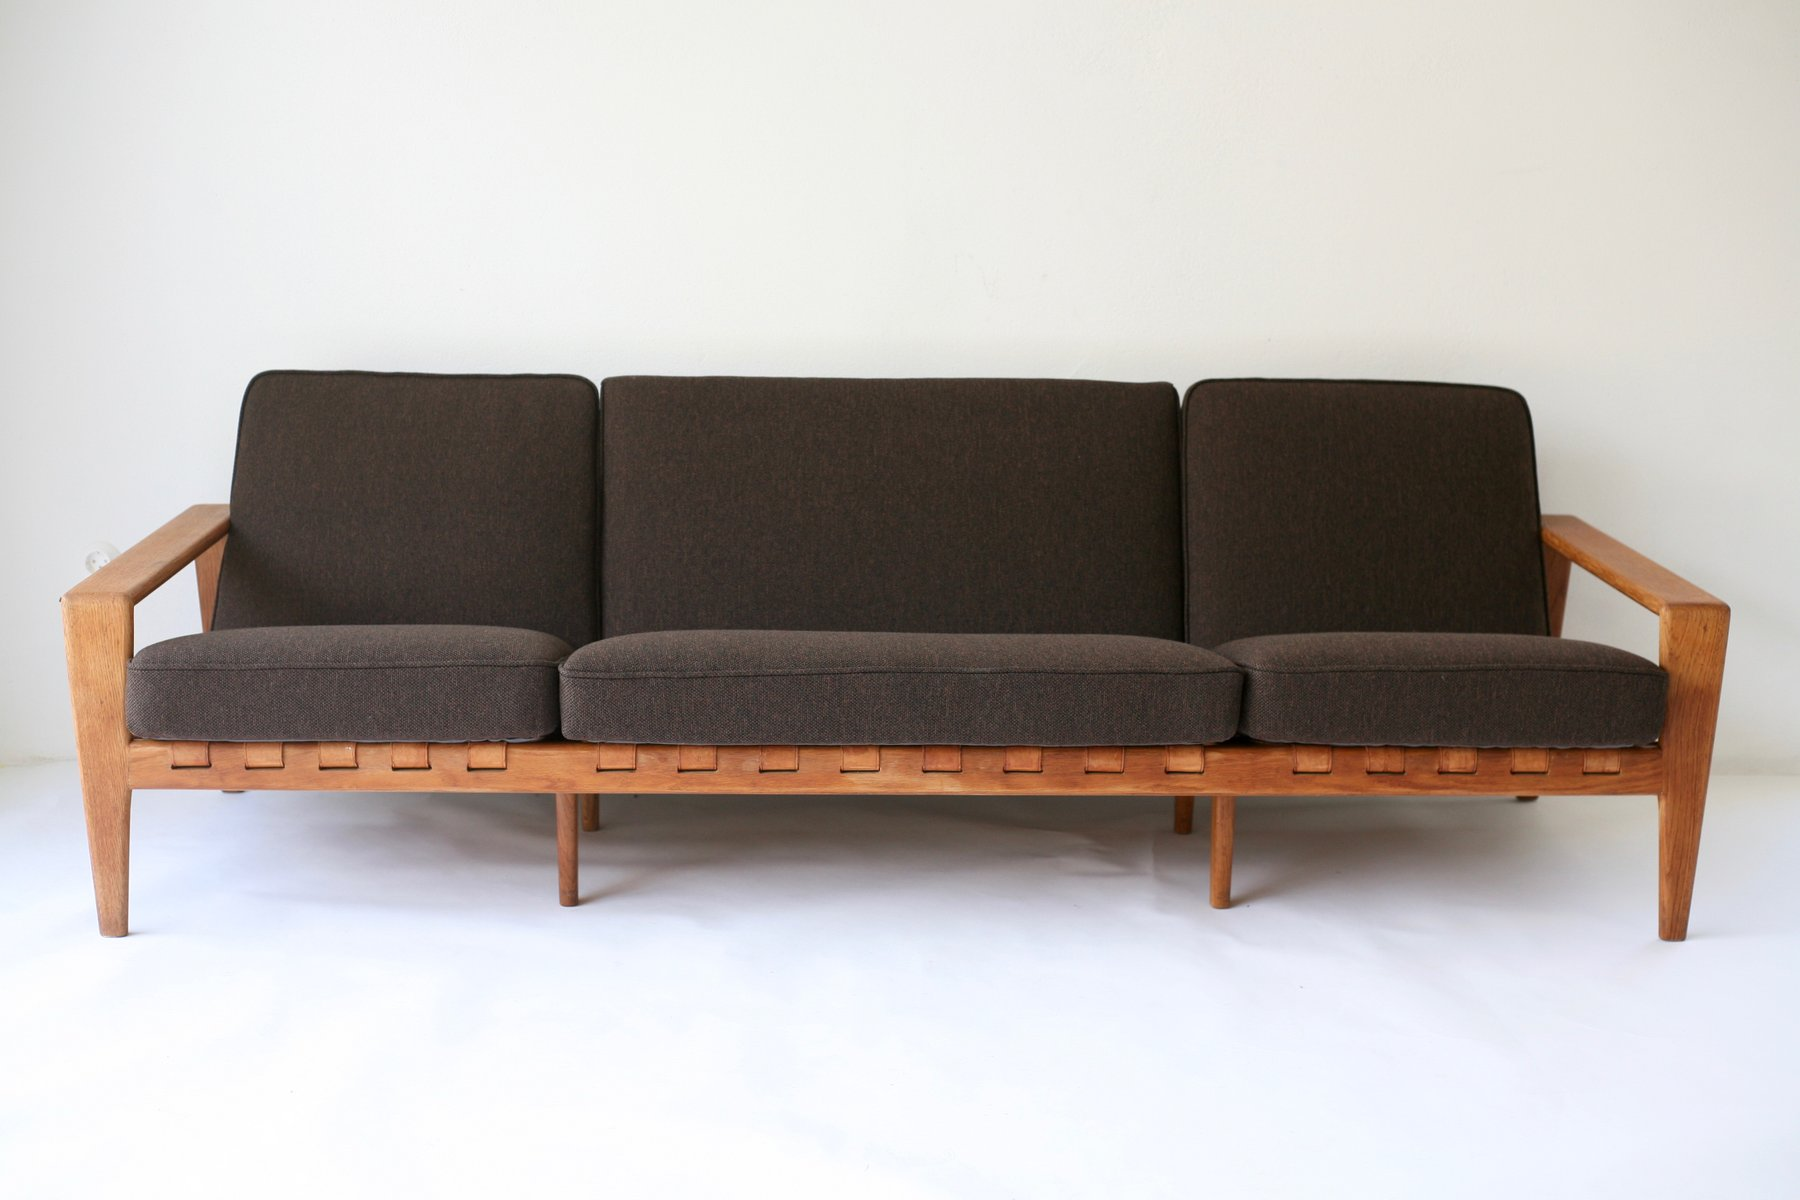 Mid Century Bod Sofa By Svante Skogh For S Ffle M Belfabrik 1959 For Sale At Pamono